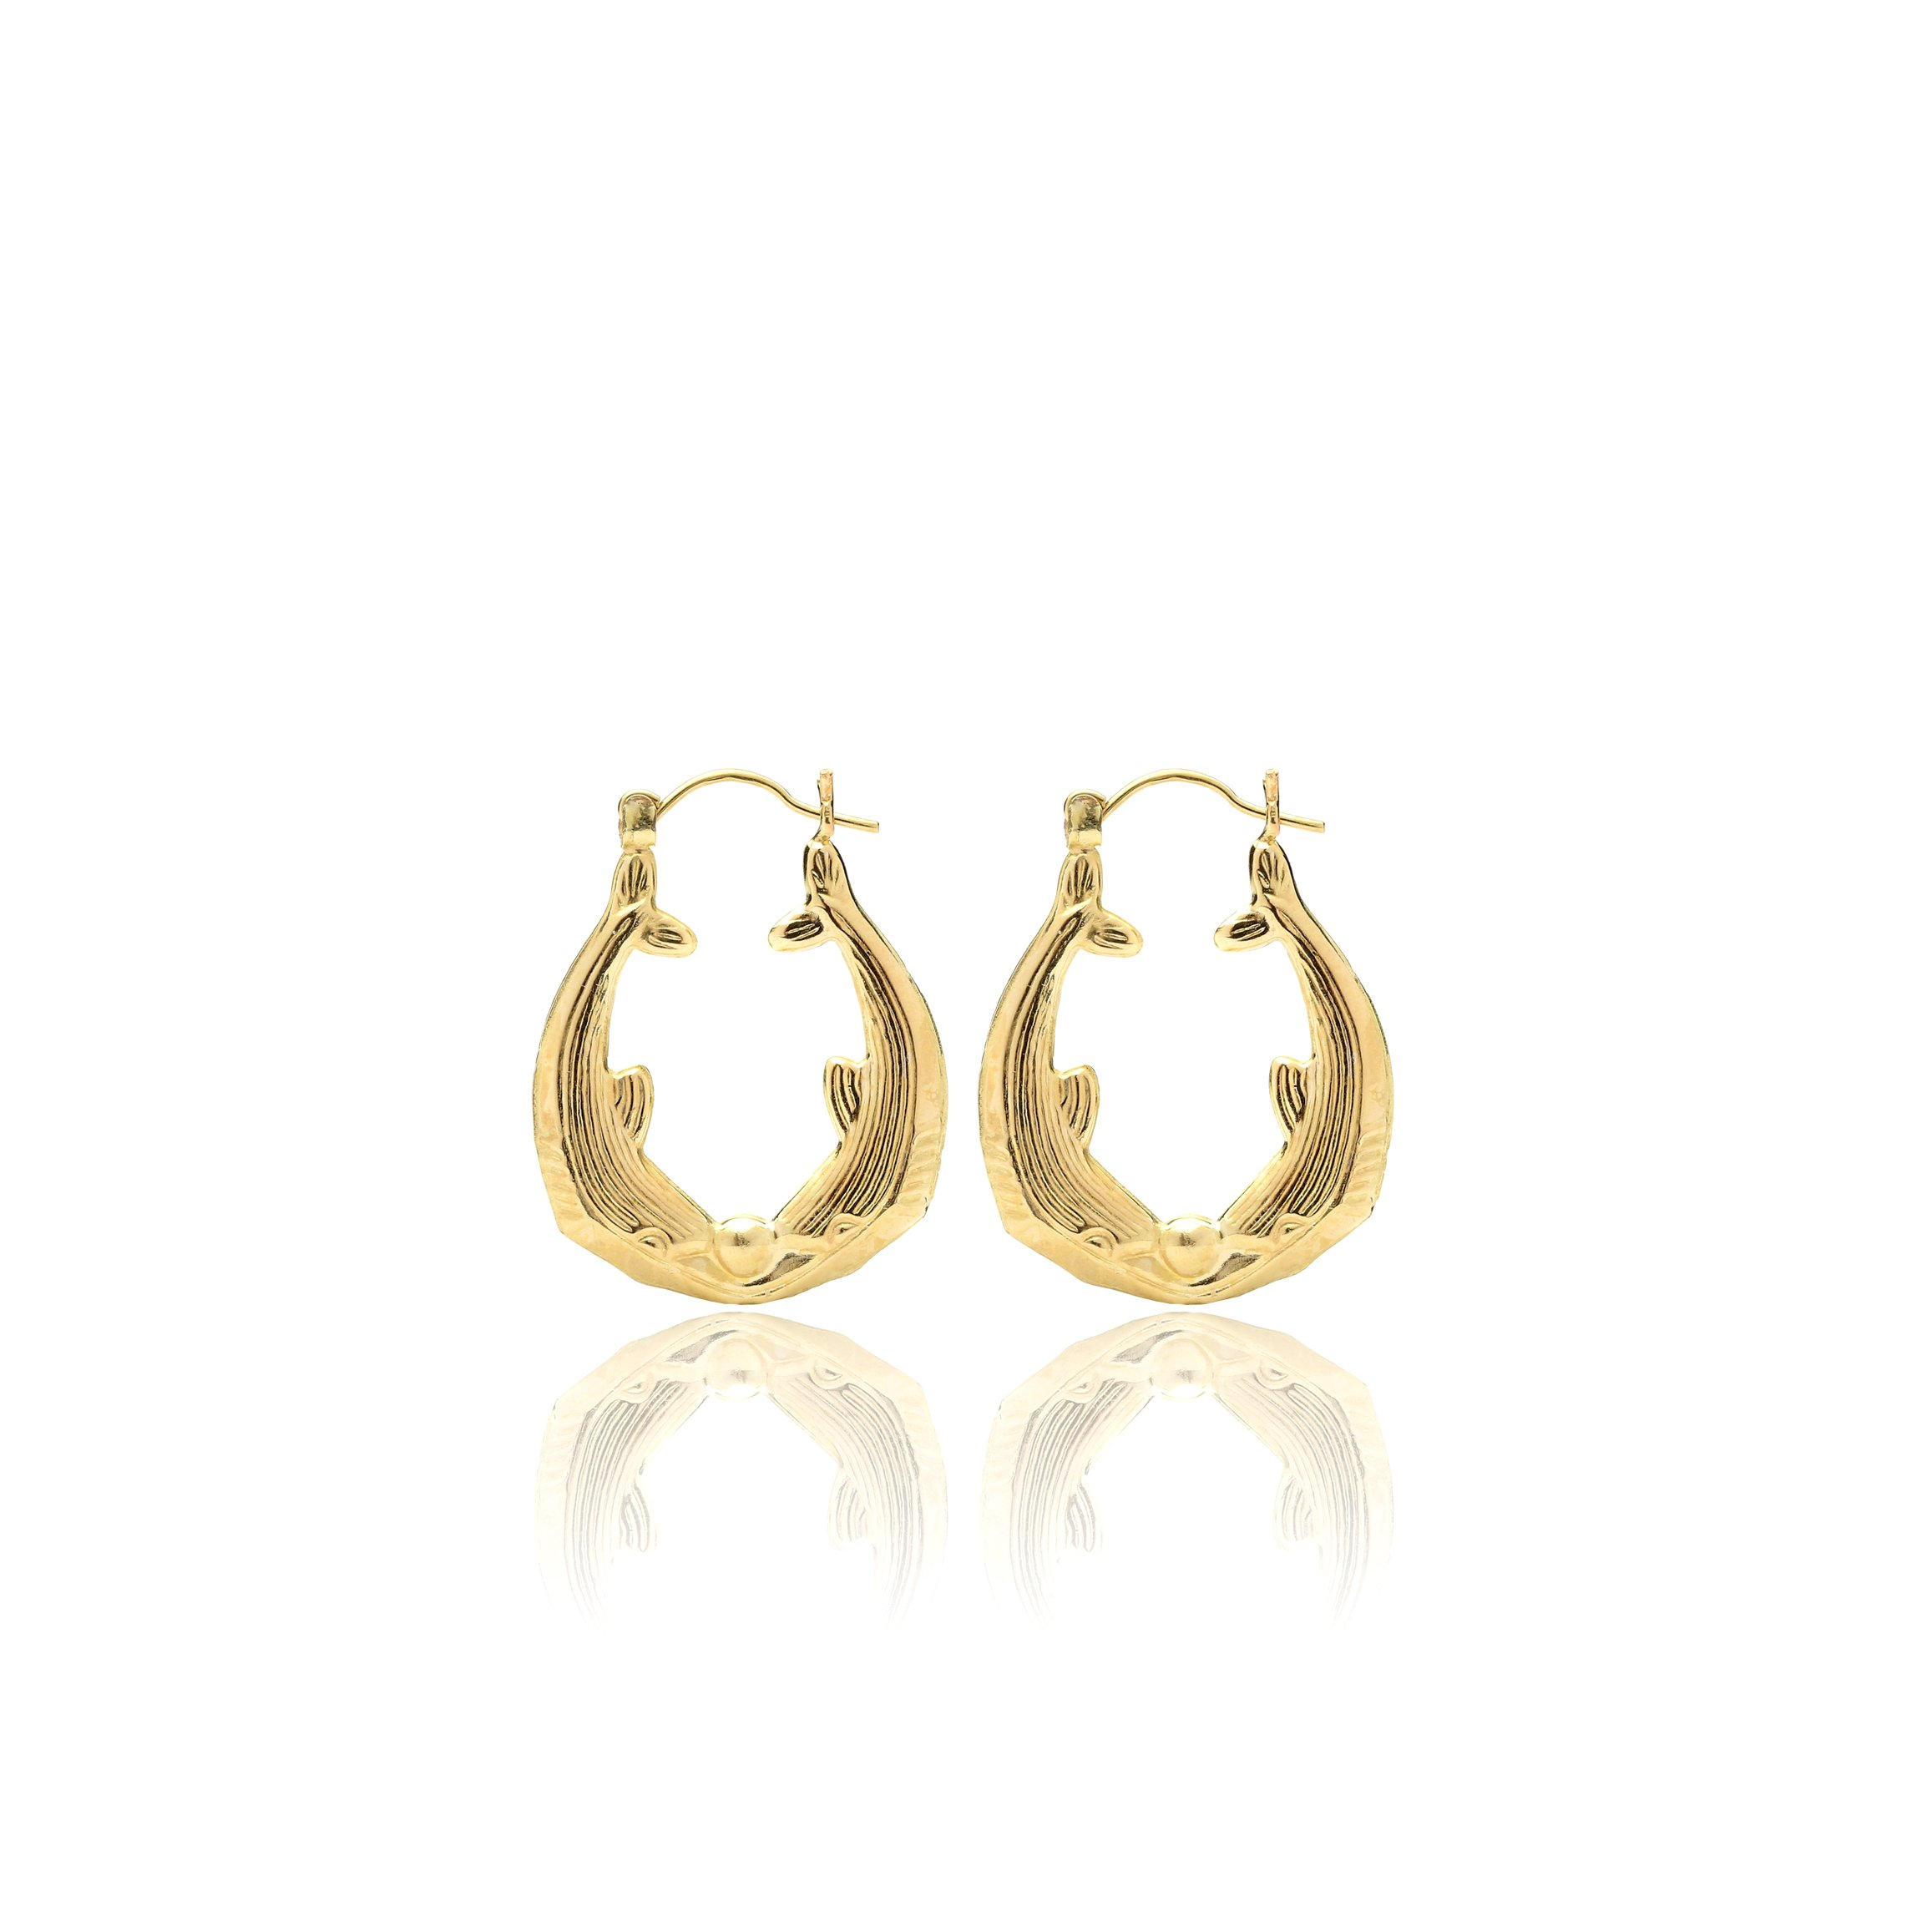 10k Yellow Gold Friendship Love Hoop Earrings with Kiss Dolphin Design for Women & Girls, Medium